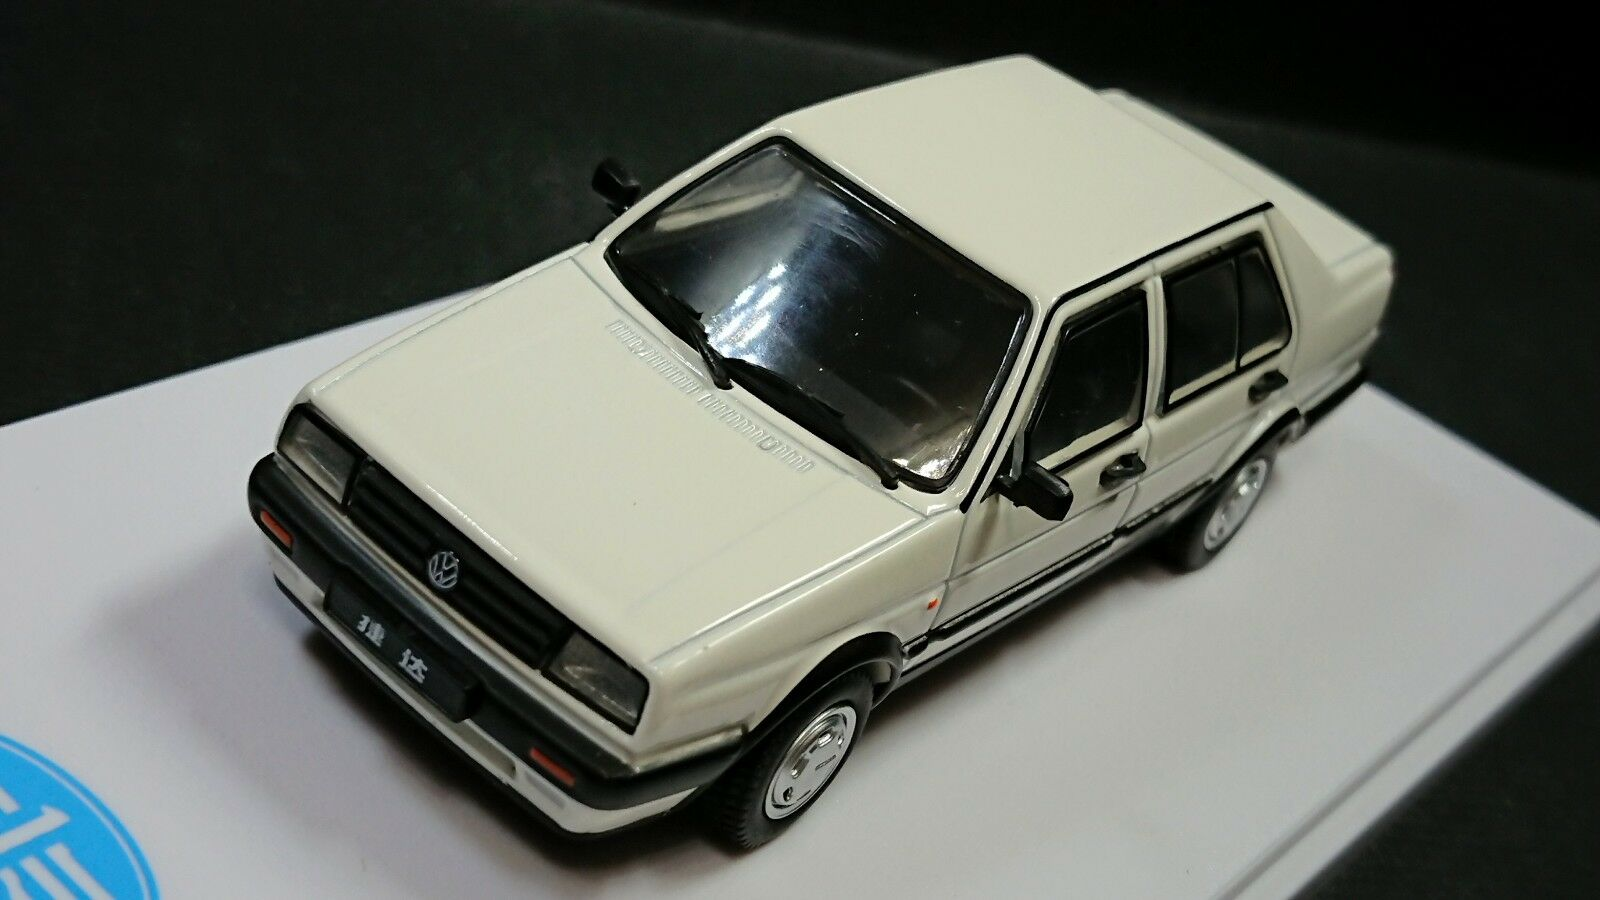 STC 1 43 FAW Volkswagen VW Jetta Mk2 MkII A2 with display case